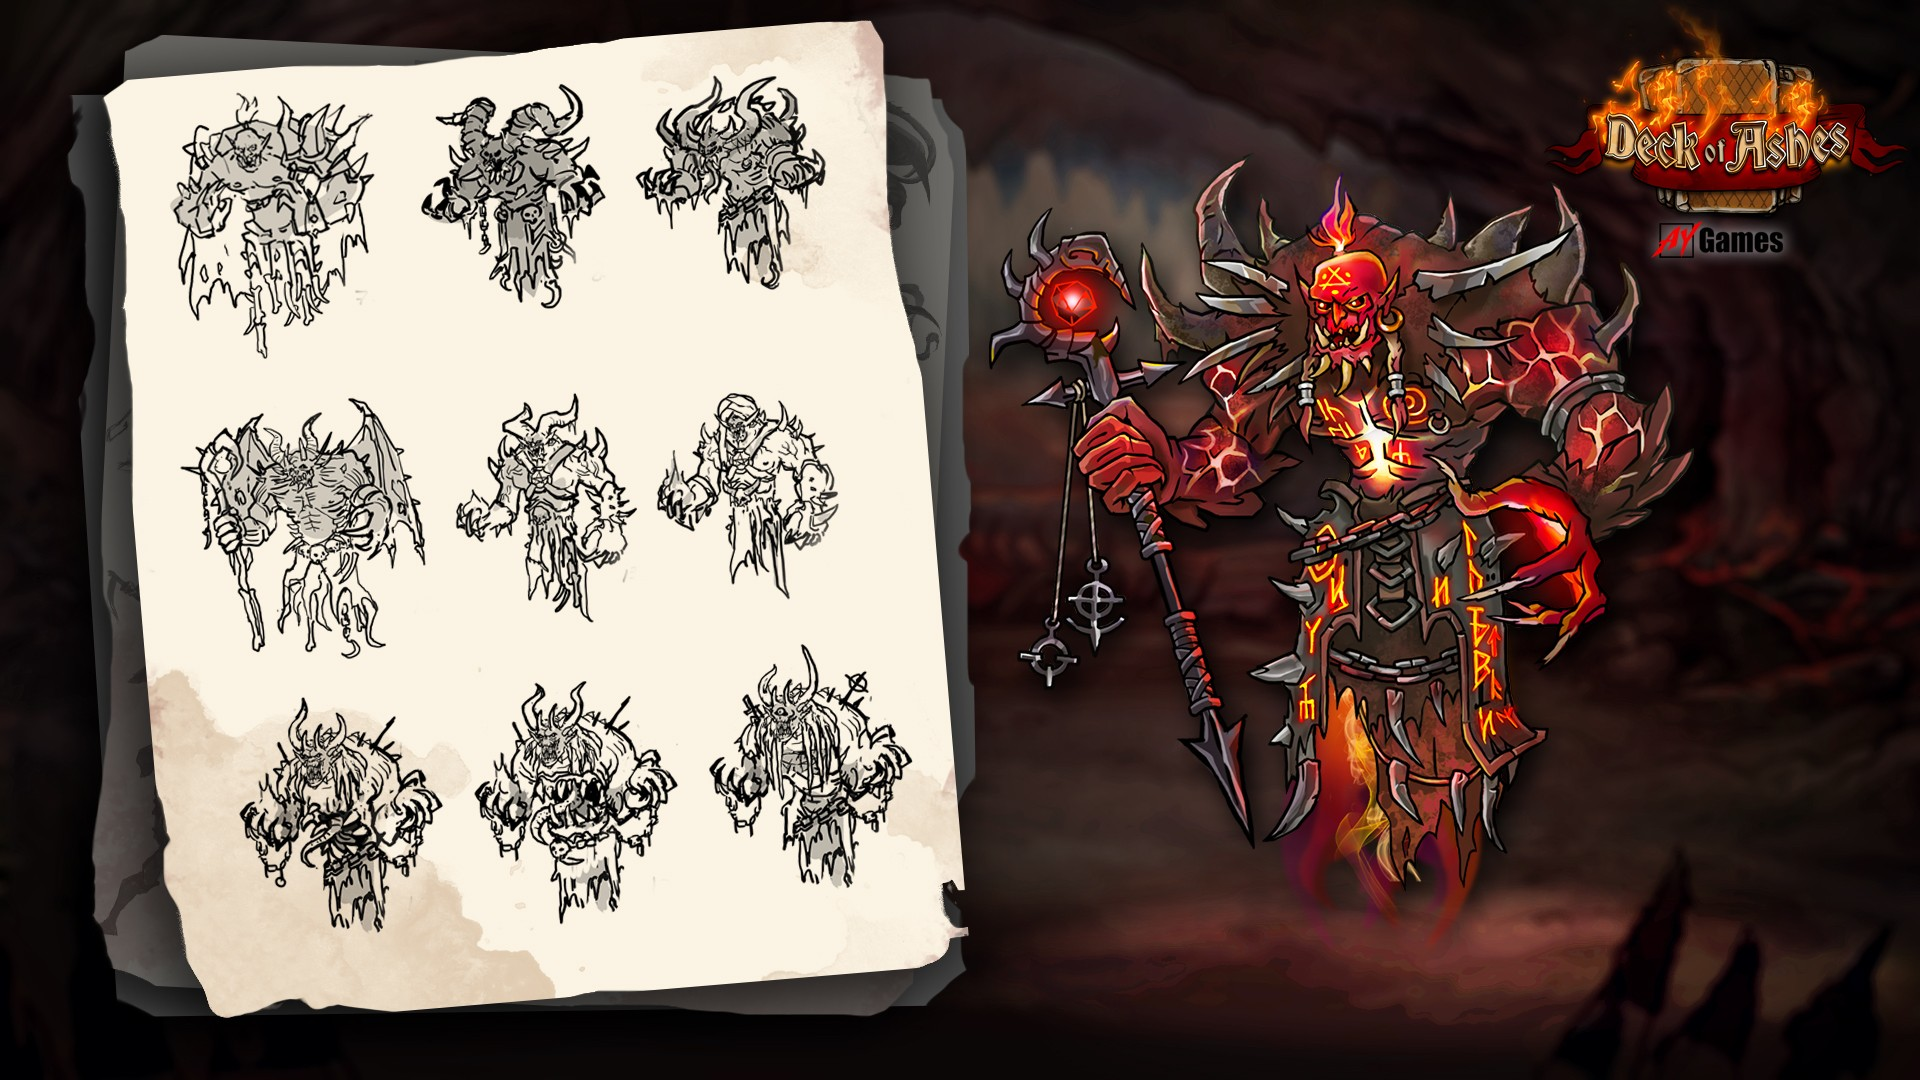 concept_ifrit.jpg - Deck of Ashes Арт